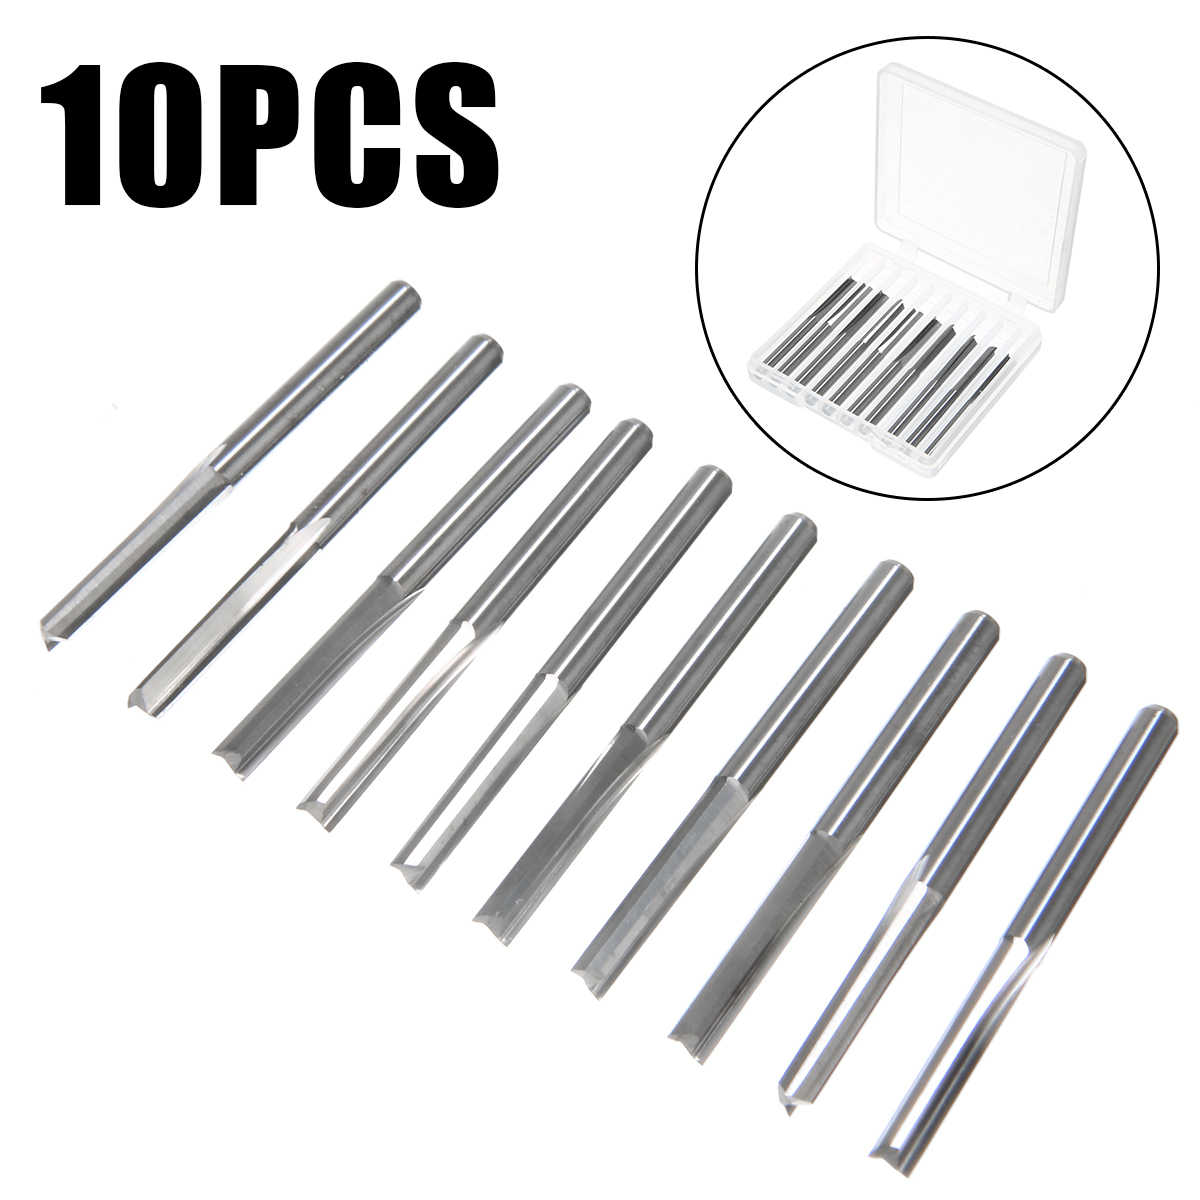 10pcs 2 Flute Straight Slot Tungsten Steel CNC Router Bits Wood Milling 3.175mm